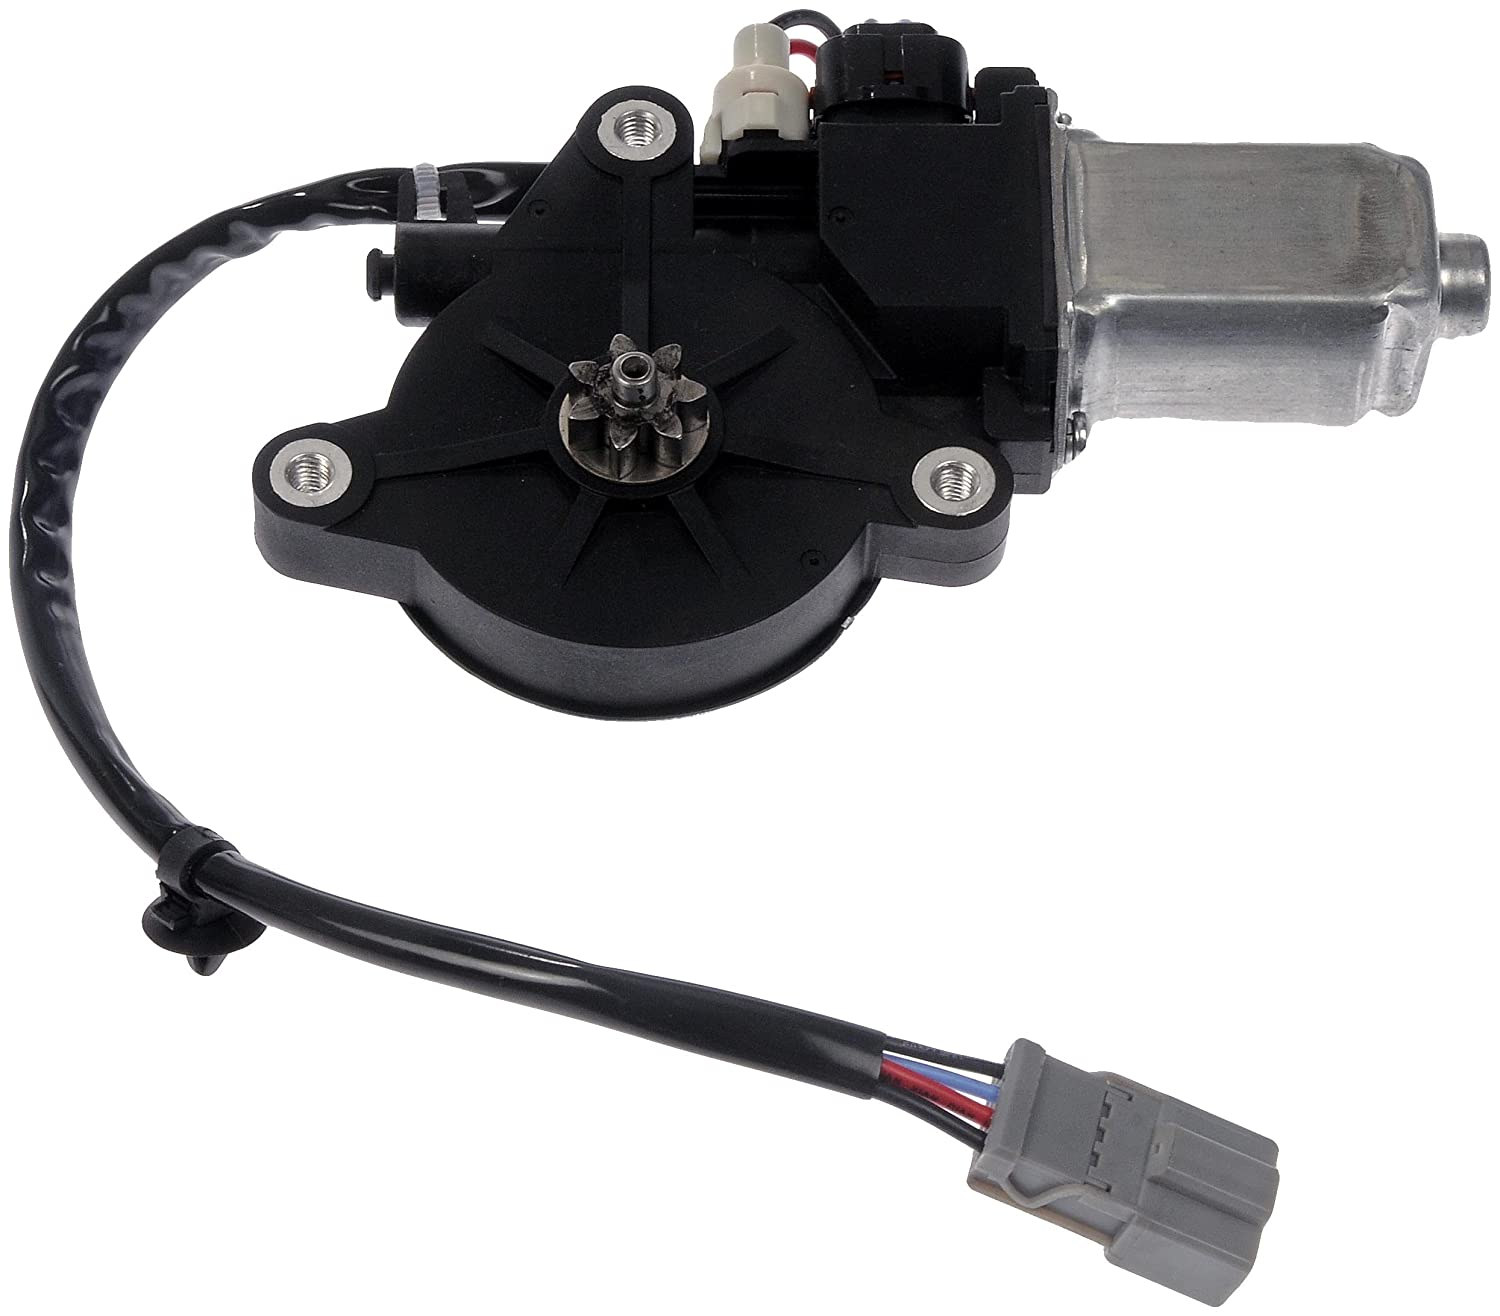 Dorman 742-848 Acura/Honda Front Driver Side Window Lift Motor